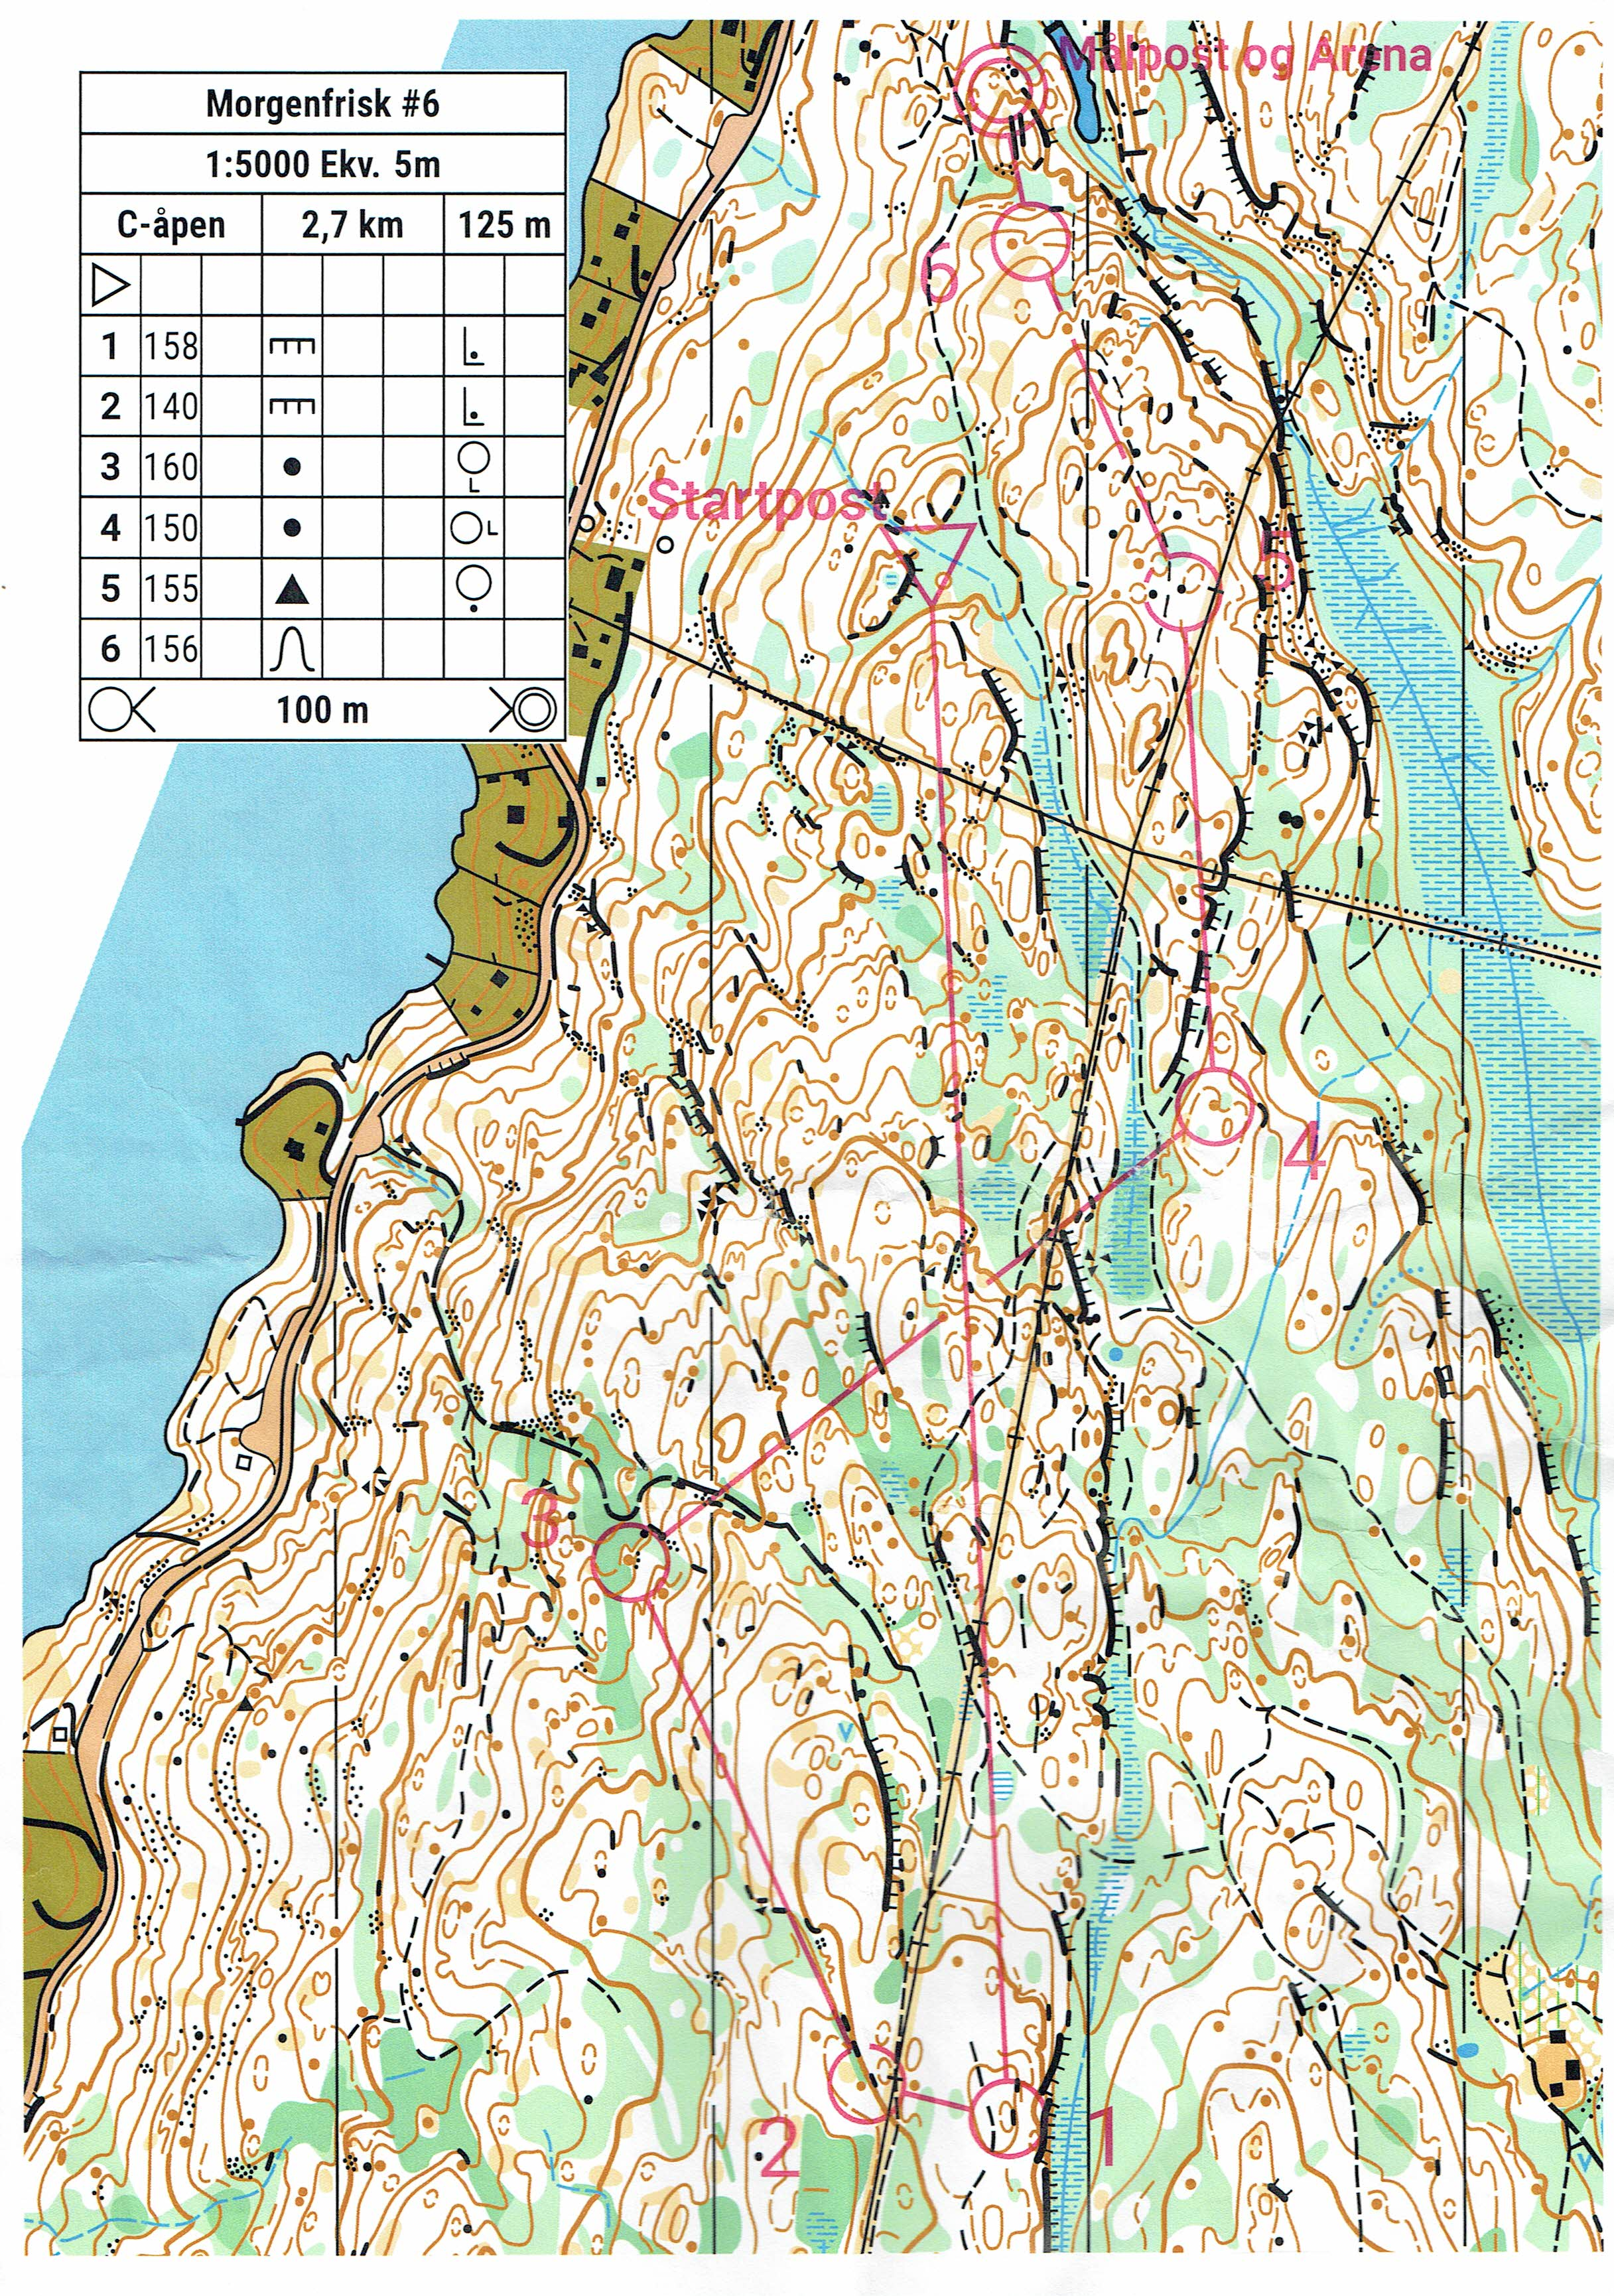 Morgenfrisk I Follo August 3rd 2019 Orienteering Map From Ping Ouyang